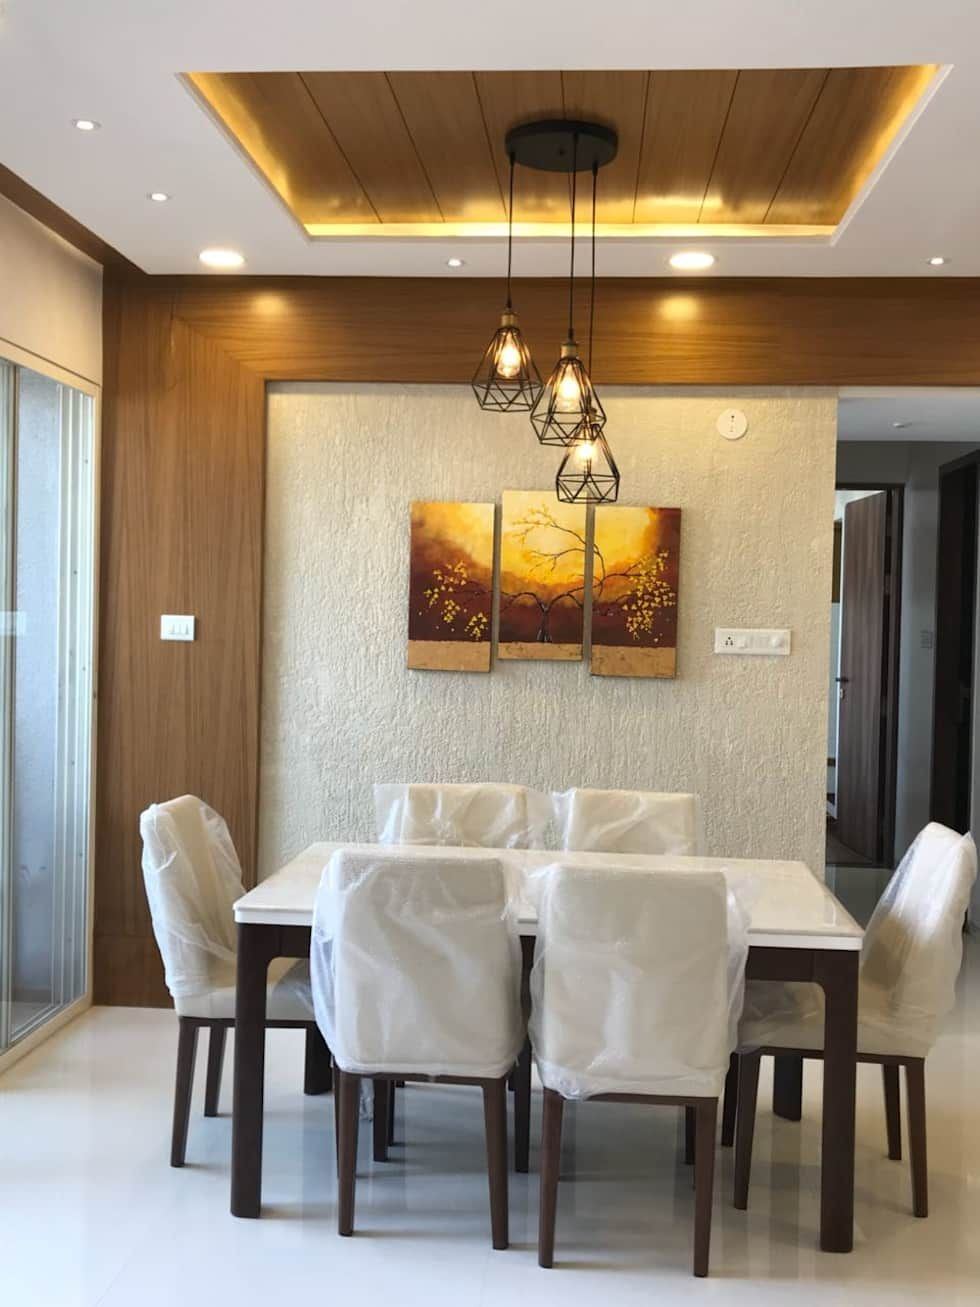 43 Simple Dining Room Design Ceiling Design Modern House